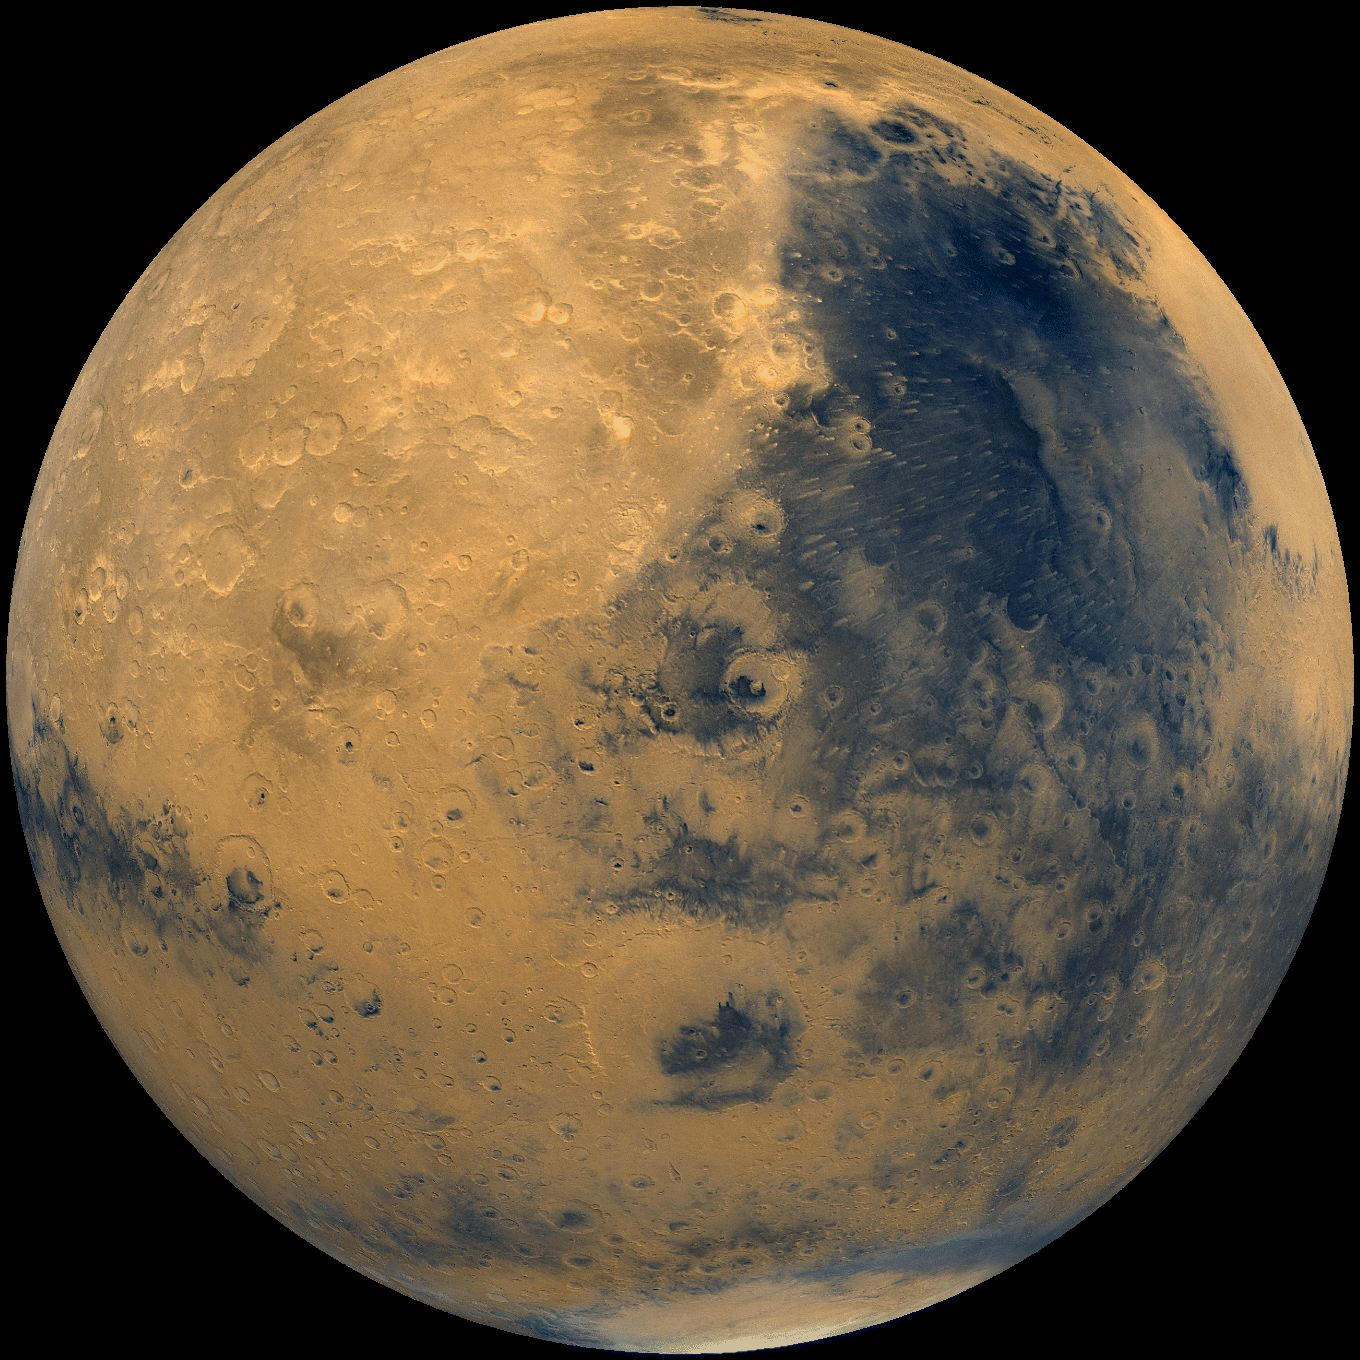 Mars 'Super-Drought' May Make Red Planet Too Dry for Alien Life